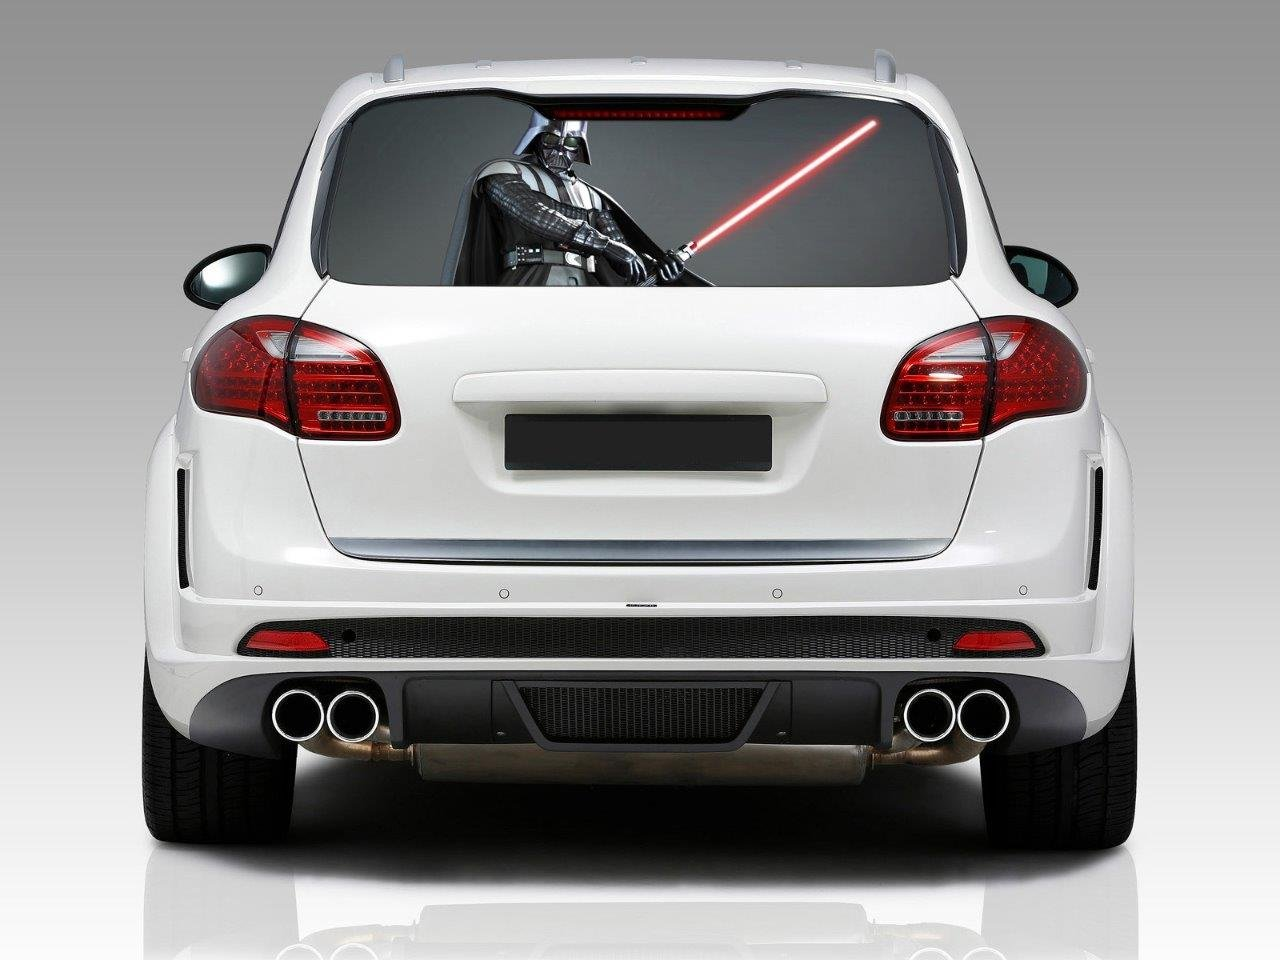 Amazoncom DARTH VADER Car Rear Window Graphic Decal Sticker - Truck back window decals